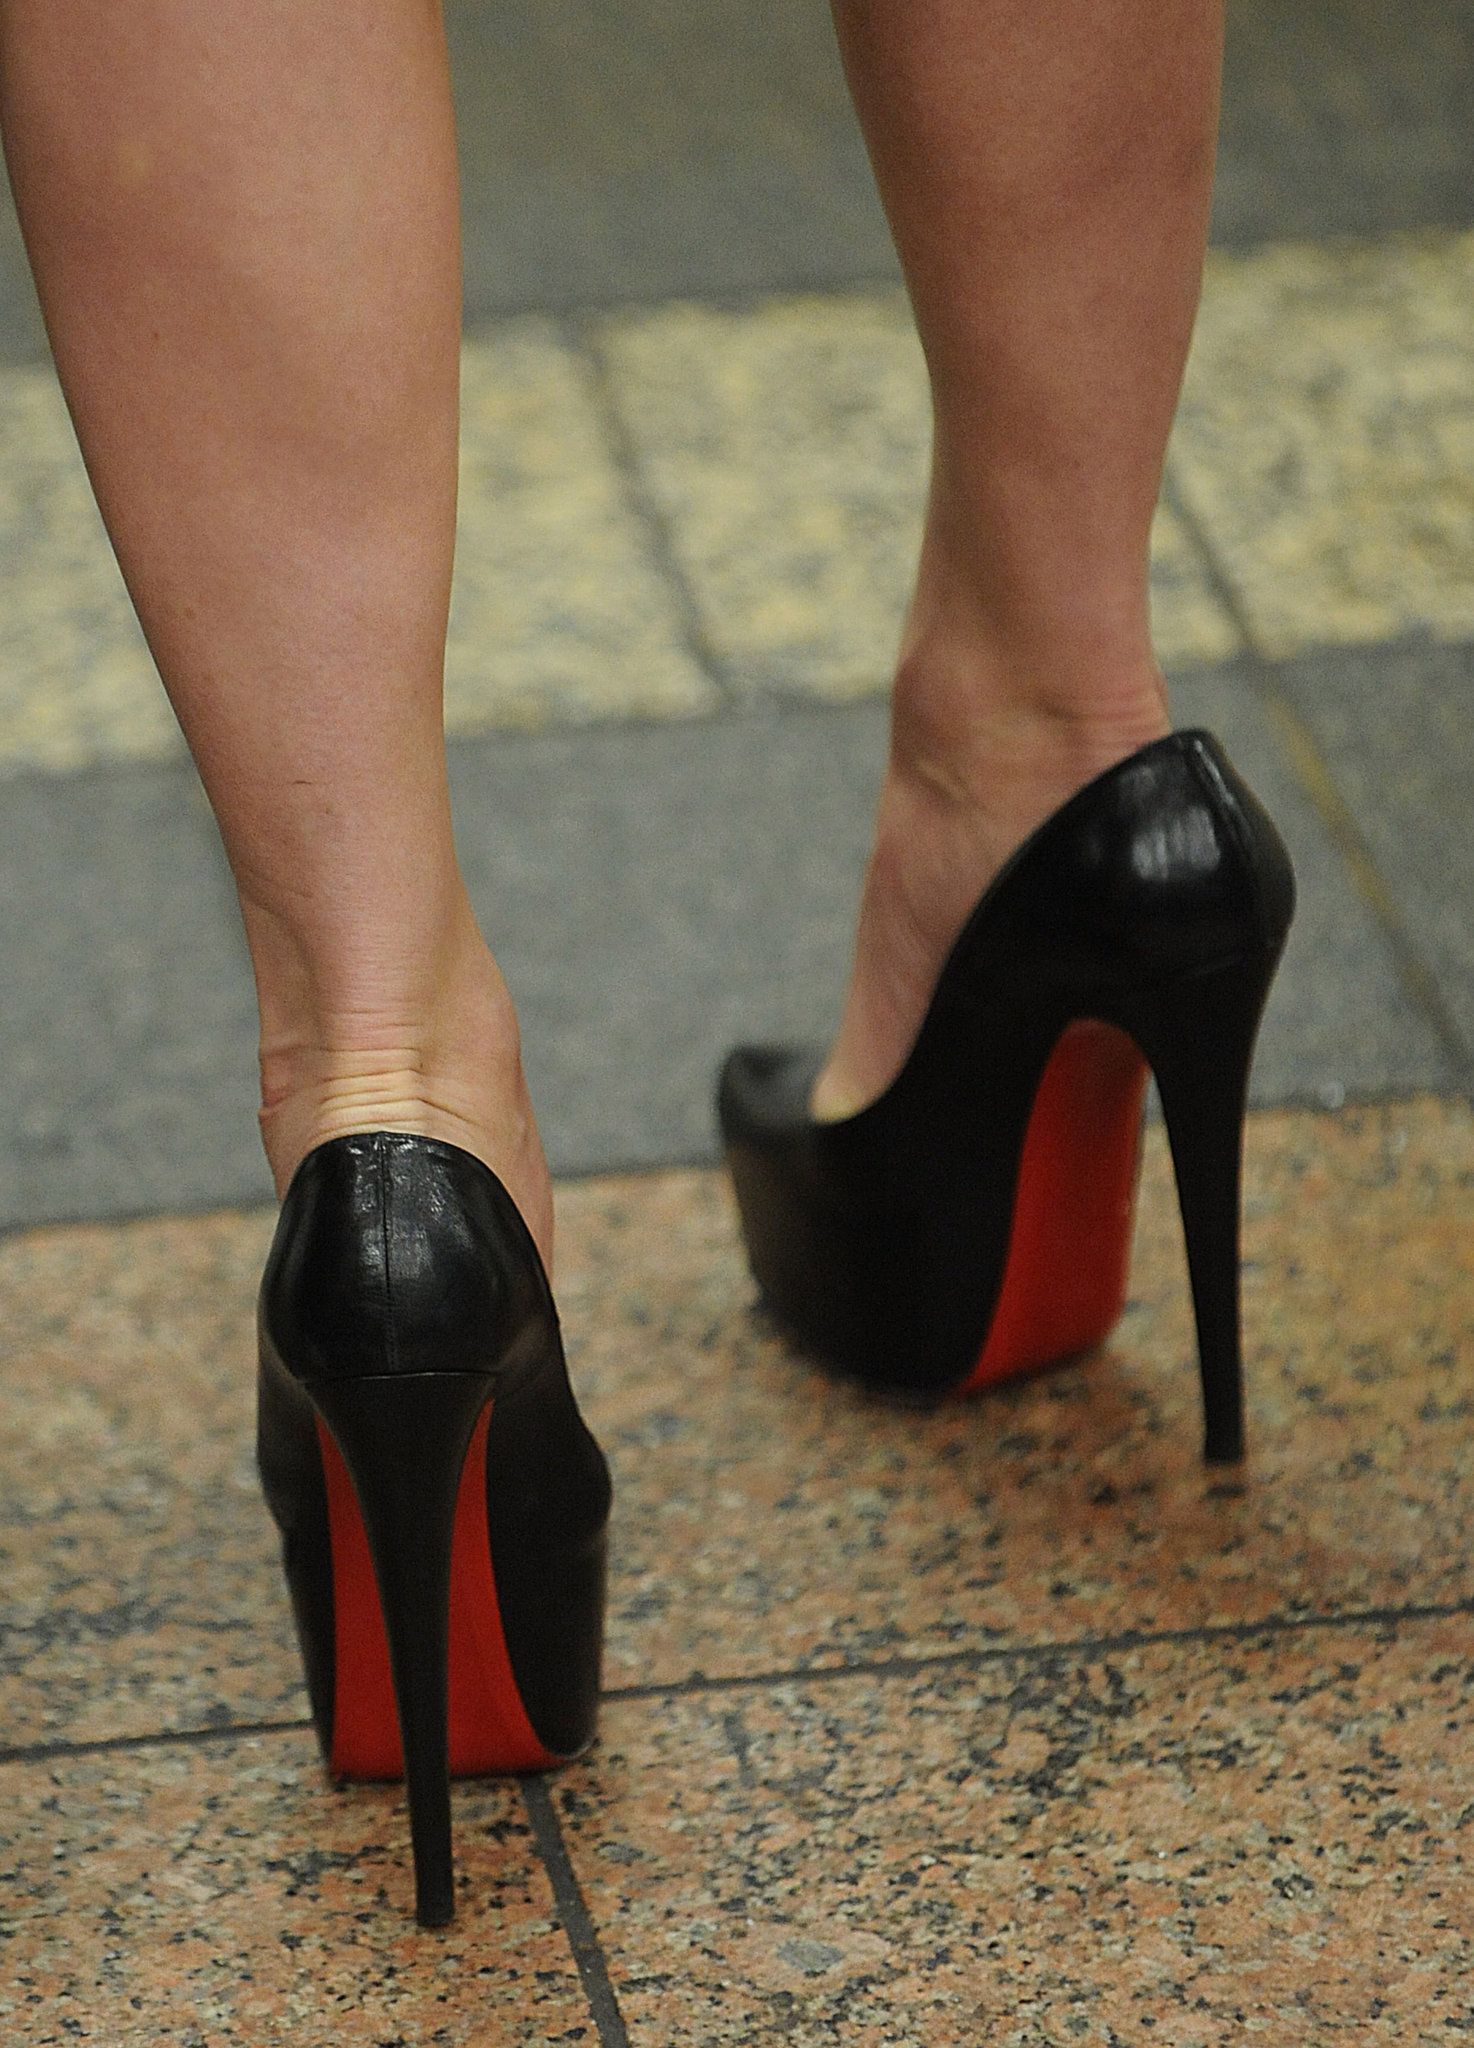 Car Woman Wallpaper Court Rules Louboutin Can Enforce A Trademark On Its Red